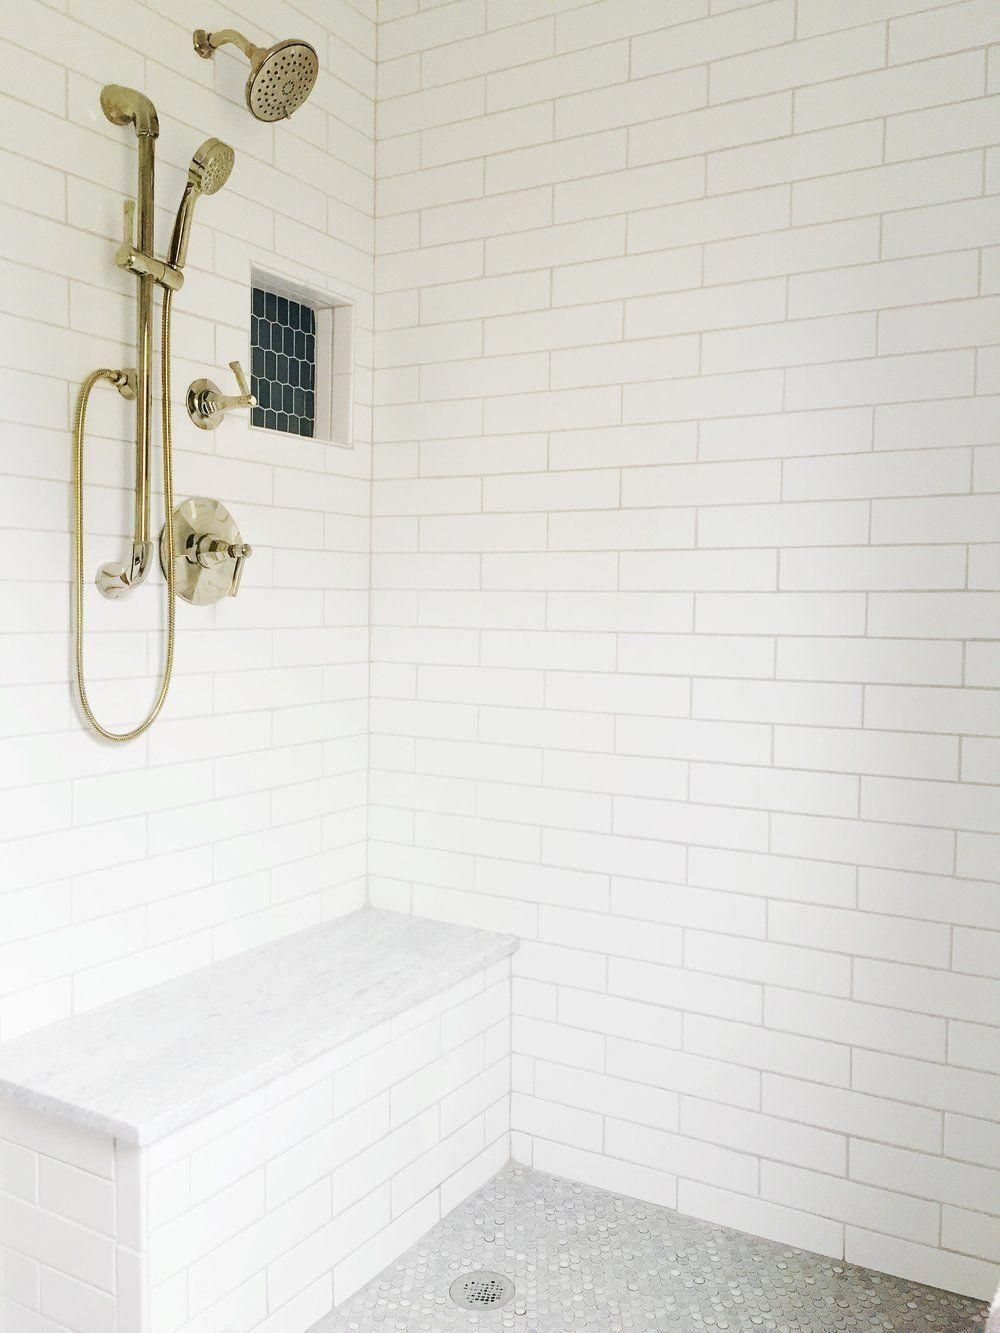 White Subway Tile 3x12 In Our Master Bathroom Renovation Subwaytile Masterbathroom Bathroom I Master Bathroom Renovation Master Bathroom Bathroom Trends